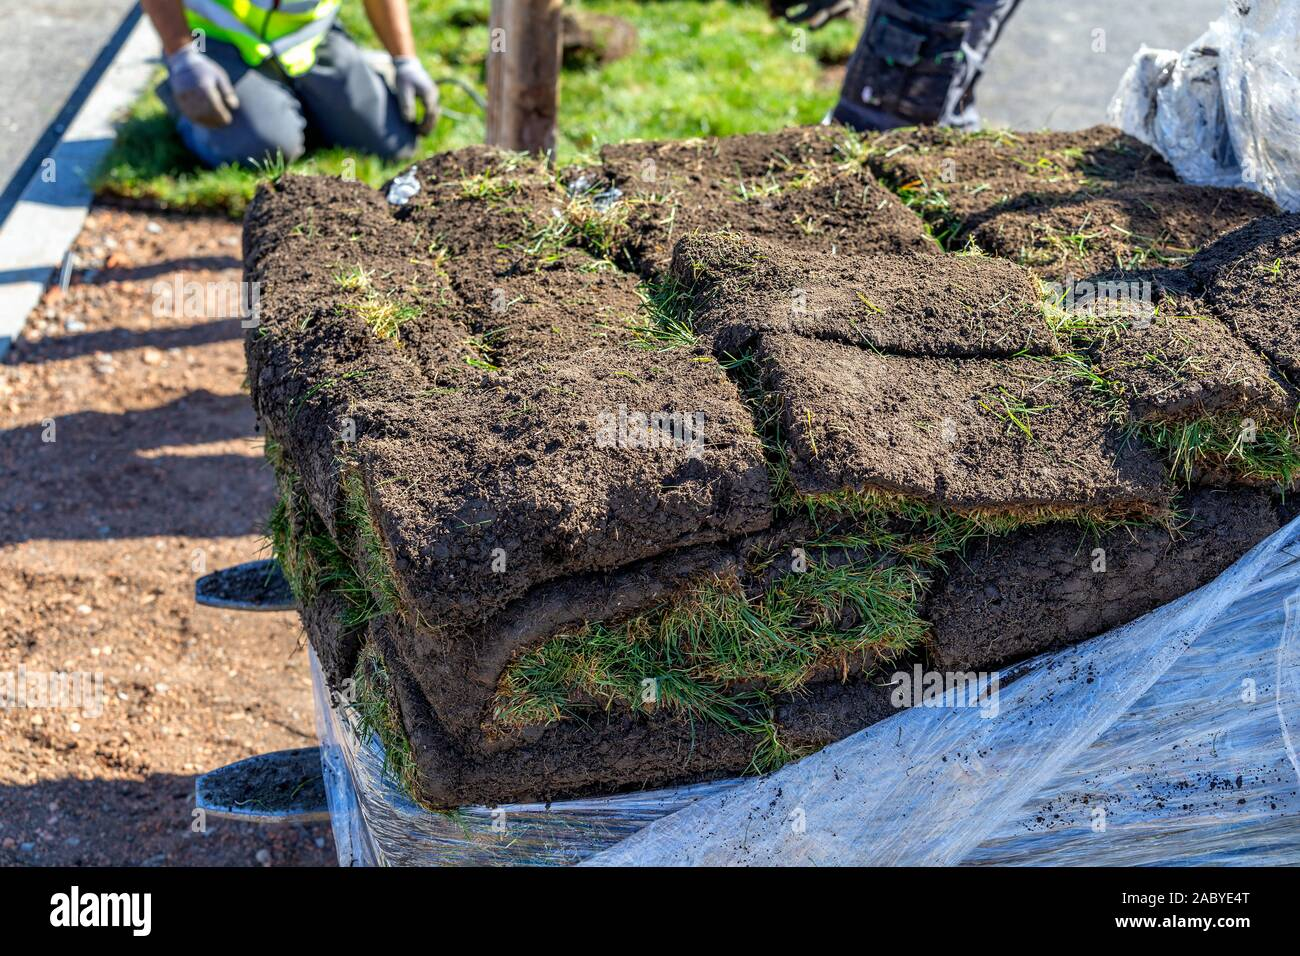 Pile Of Sod Rolls For New Lawn Grass Installation Stock Photo